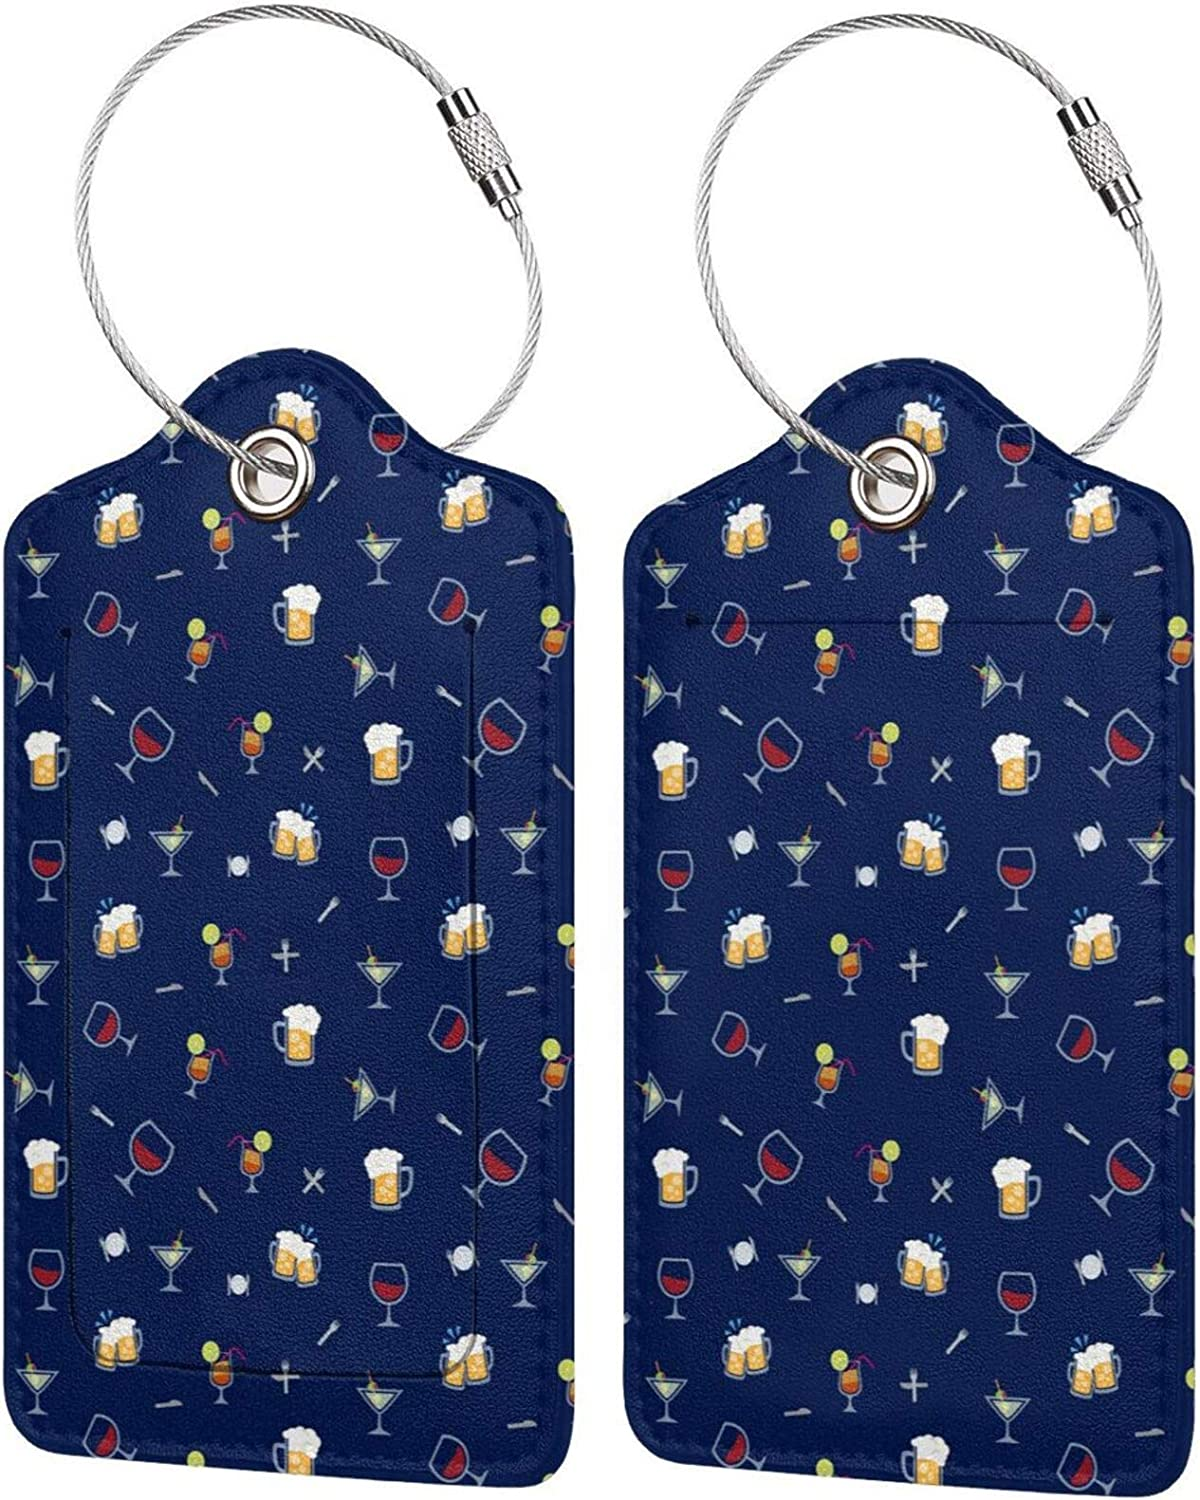 HHFASN Cute Popular brand Max 53% OFF in the world Drink Pattern Tags Luggage 2-Pack Travel